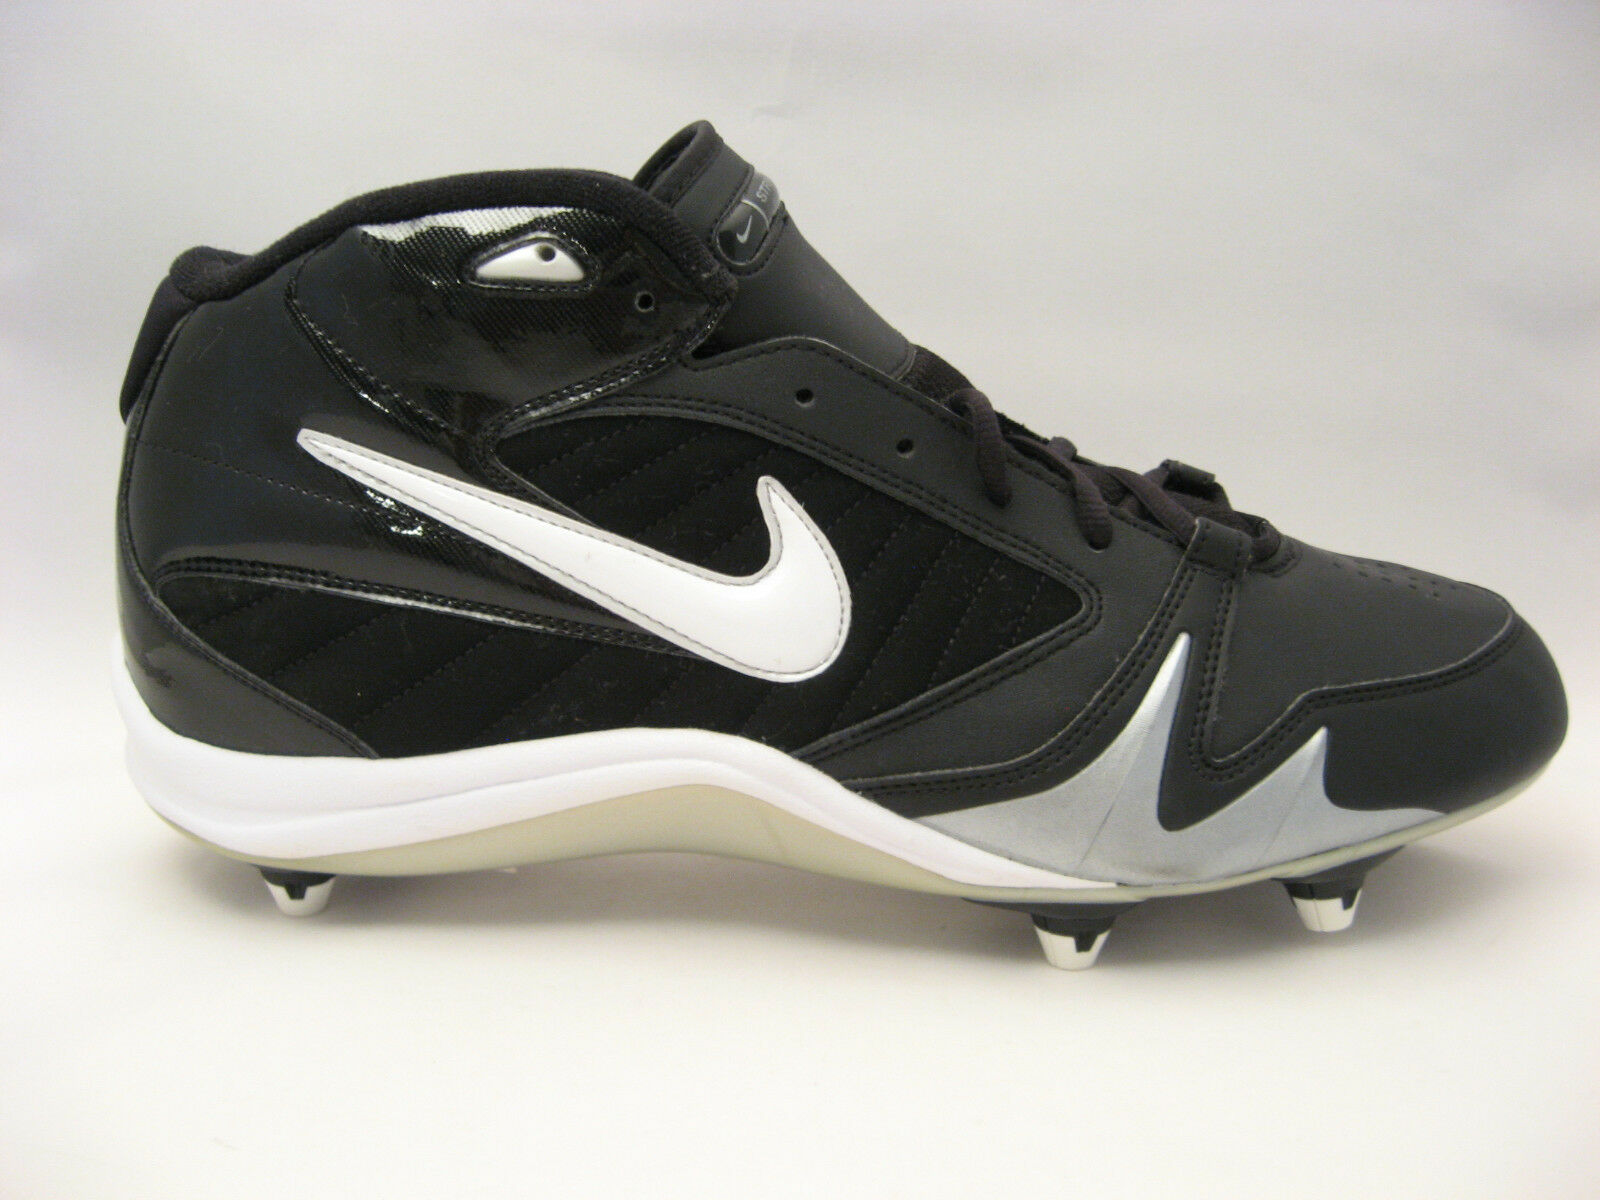 Nike Football Cleats 13.5 Shoes Strike Force 3/4 D Black White Silver 13 1/2 NEW